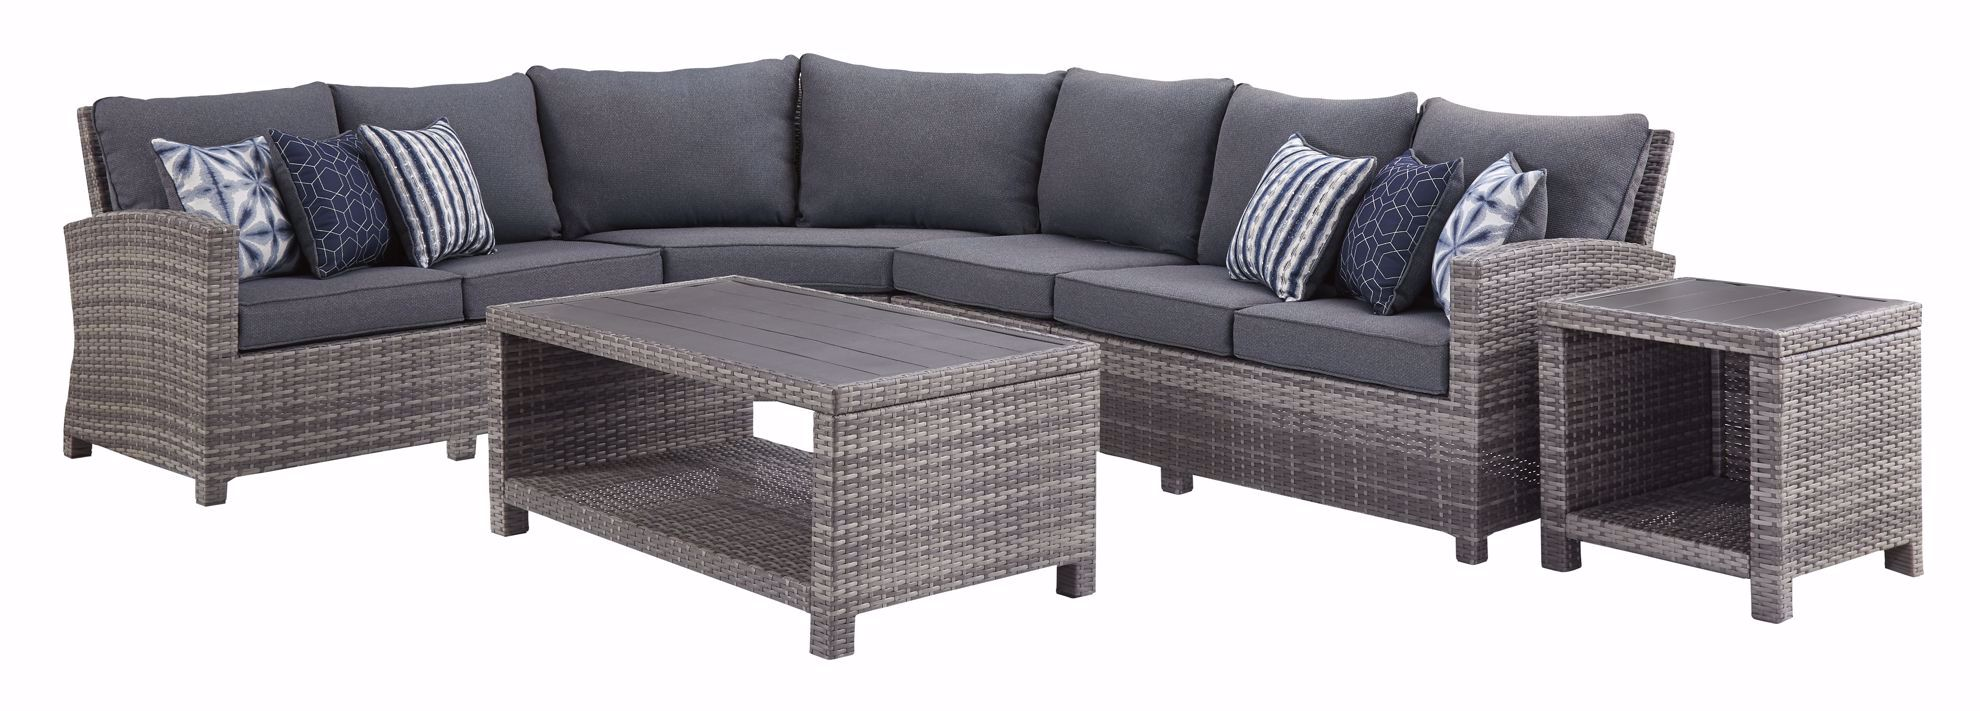 Picture of Salem Beach 4-Piece Sectional